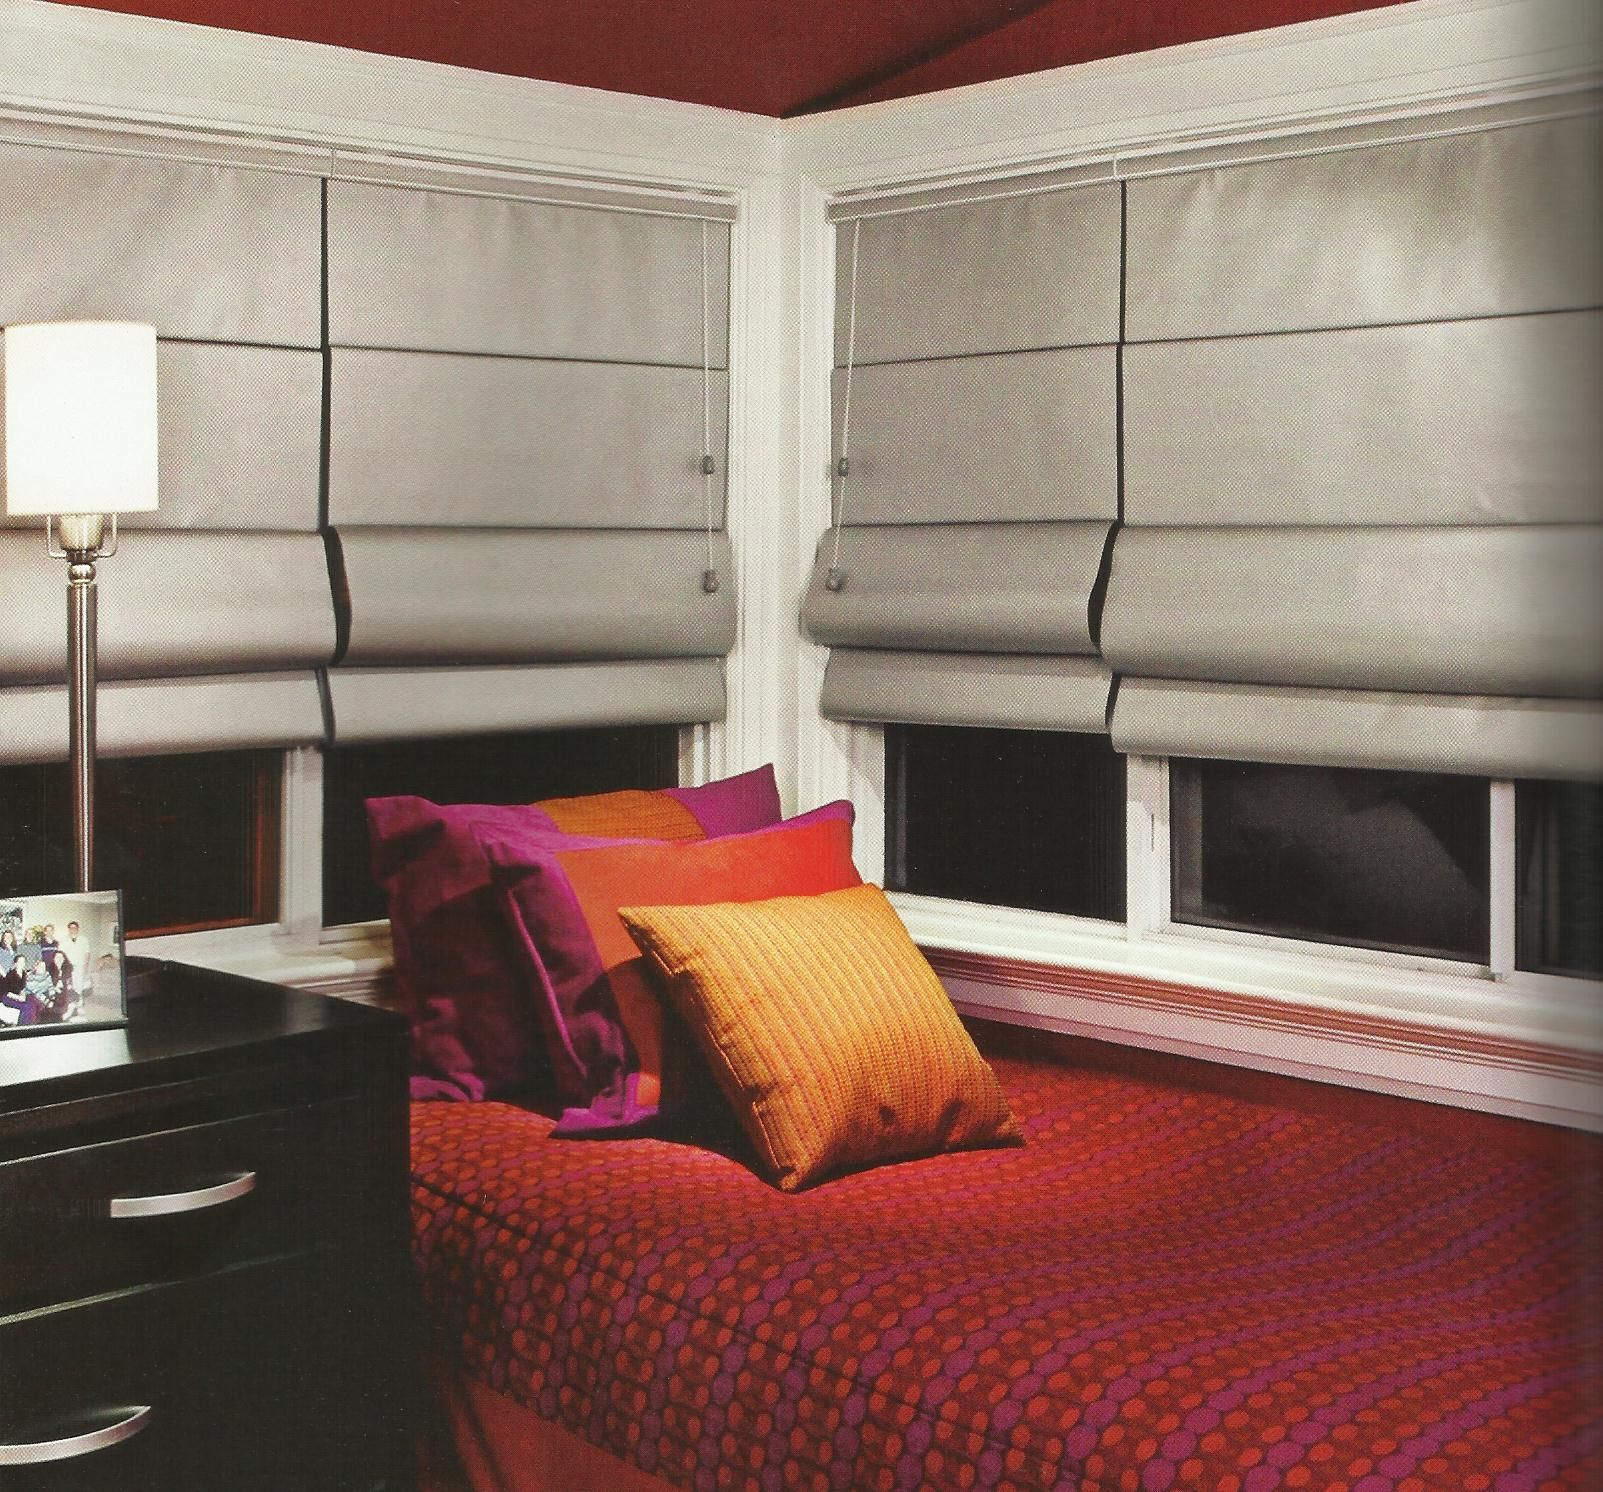 Candice Olson Basement Design: In A Small Room, Opt For Tailored Window Treatments That